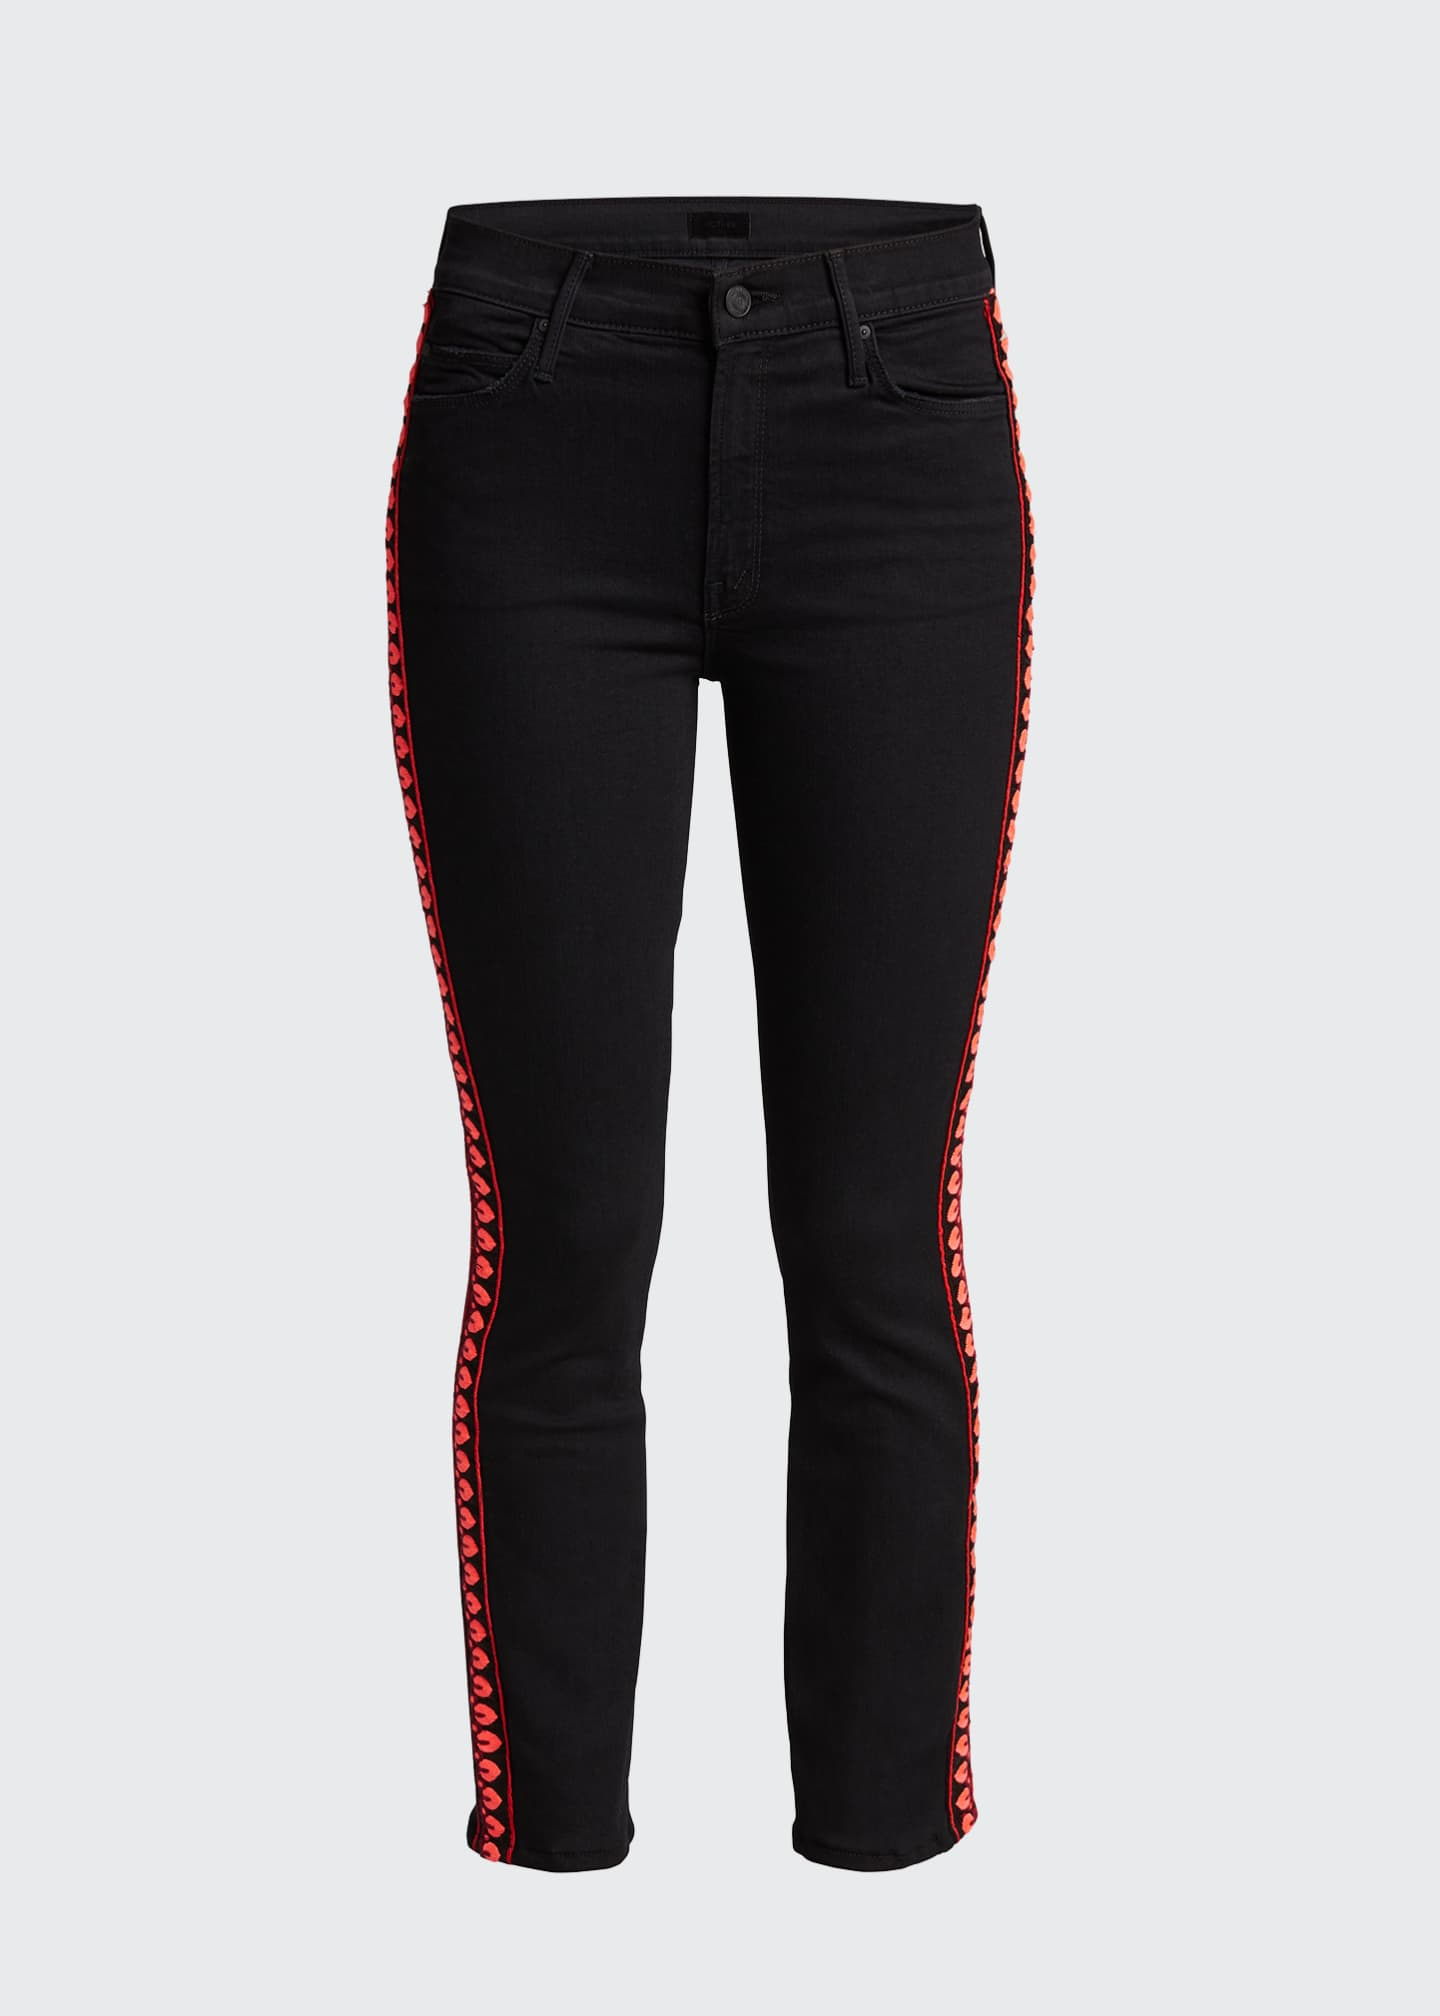 Image 5 of 5: The Mid-Rise Dazzler Ankle Jeans